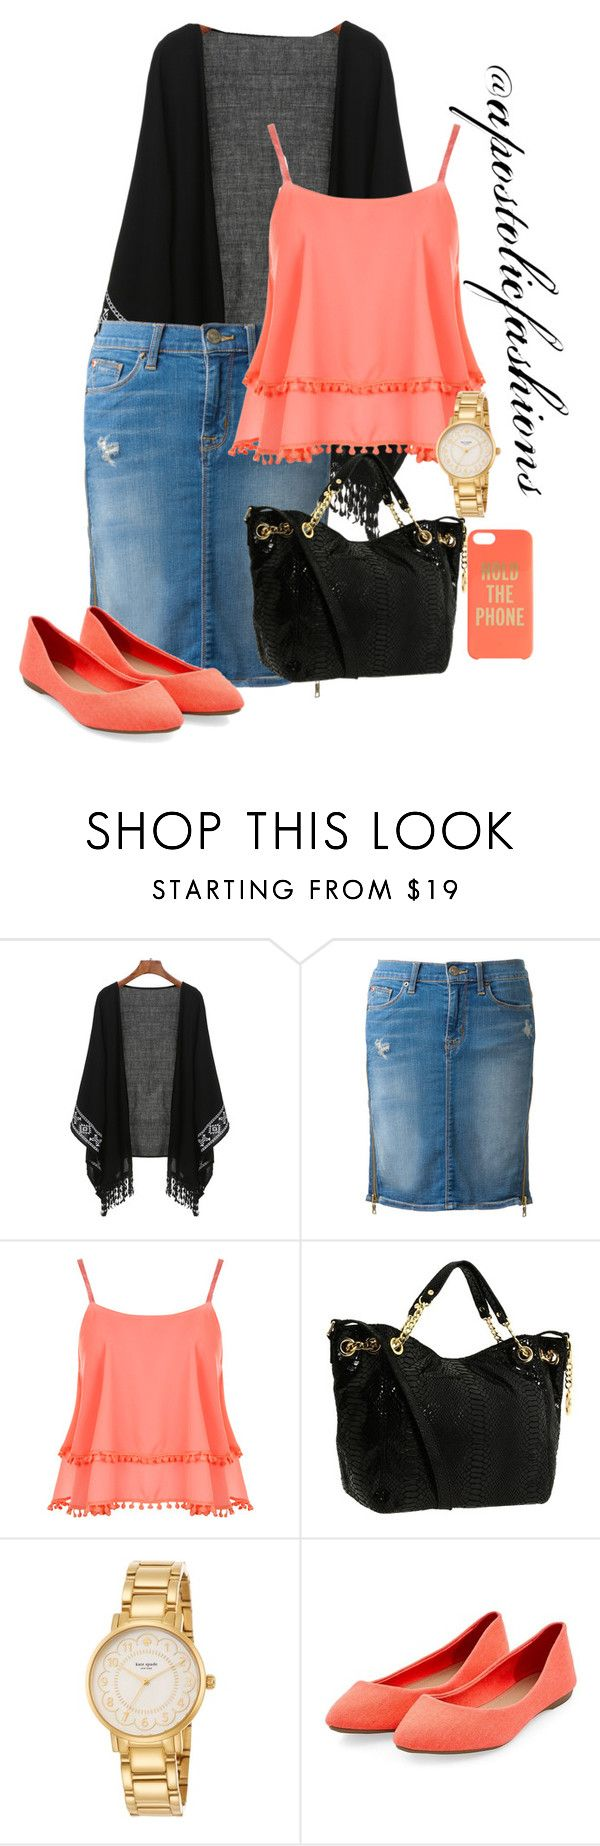 """Apostolic Fashions #1348"" by apostolicfashions on Polyvore featuring Hudson, WearAll, MICHAEL Michael Kors and Kate Spade"